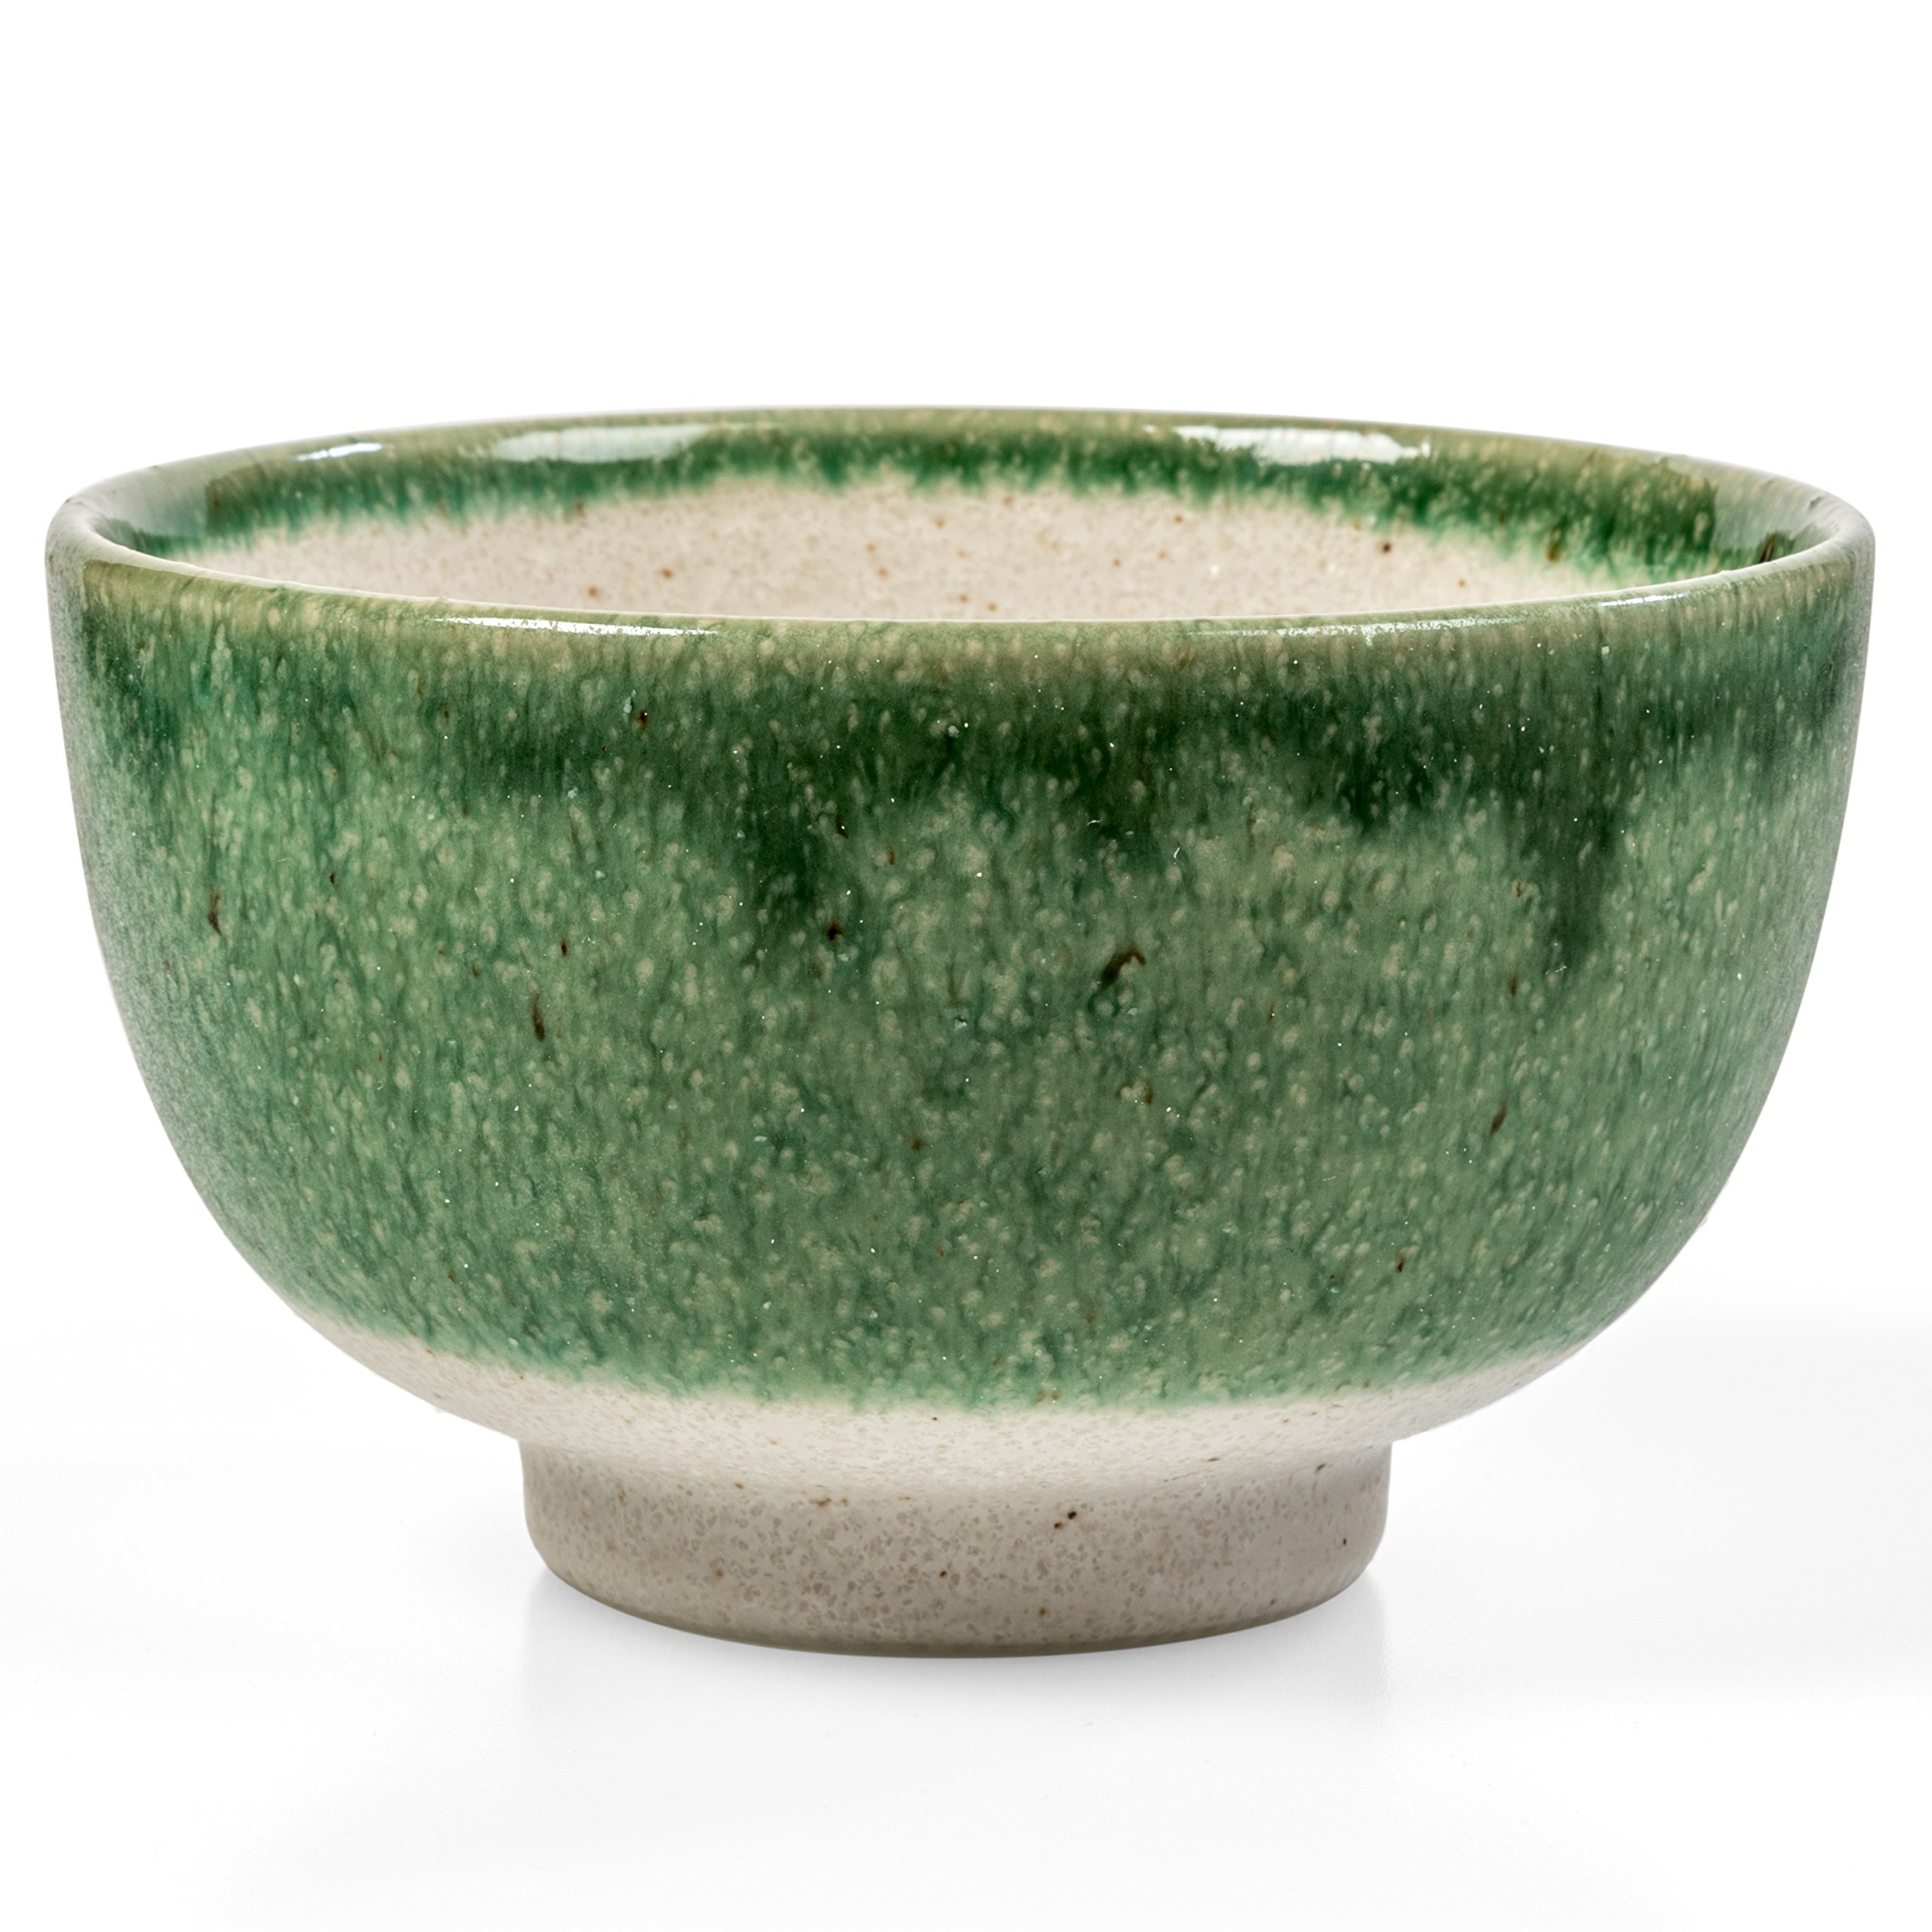 Tealyra - Matcha Bowl - Authentic Ceramic Made in Japan - Chawan from Japanese Master-Craft - Matcha Tea Cup Ceremony Use - Green